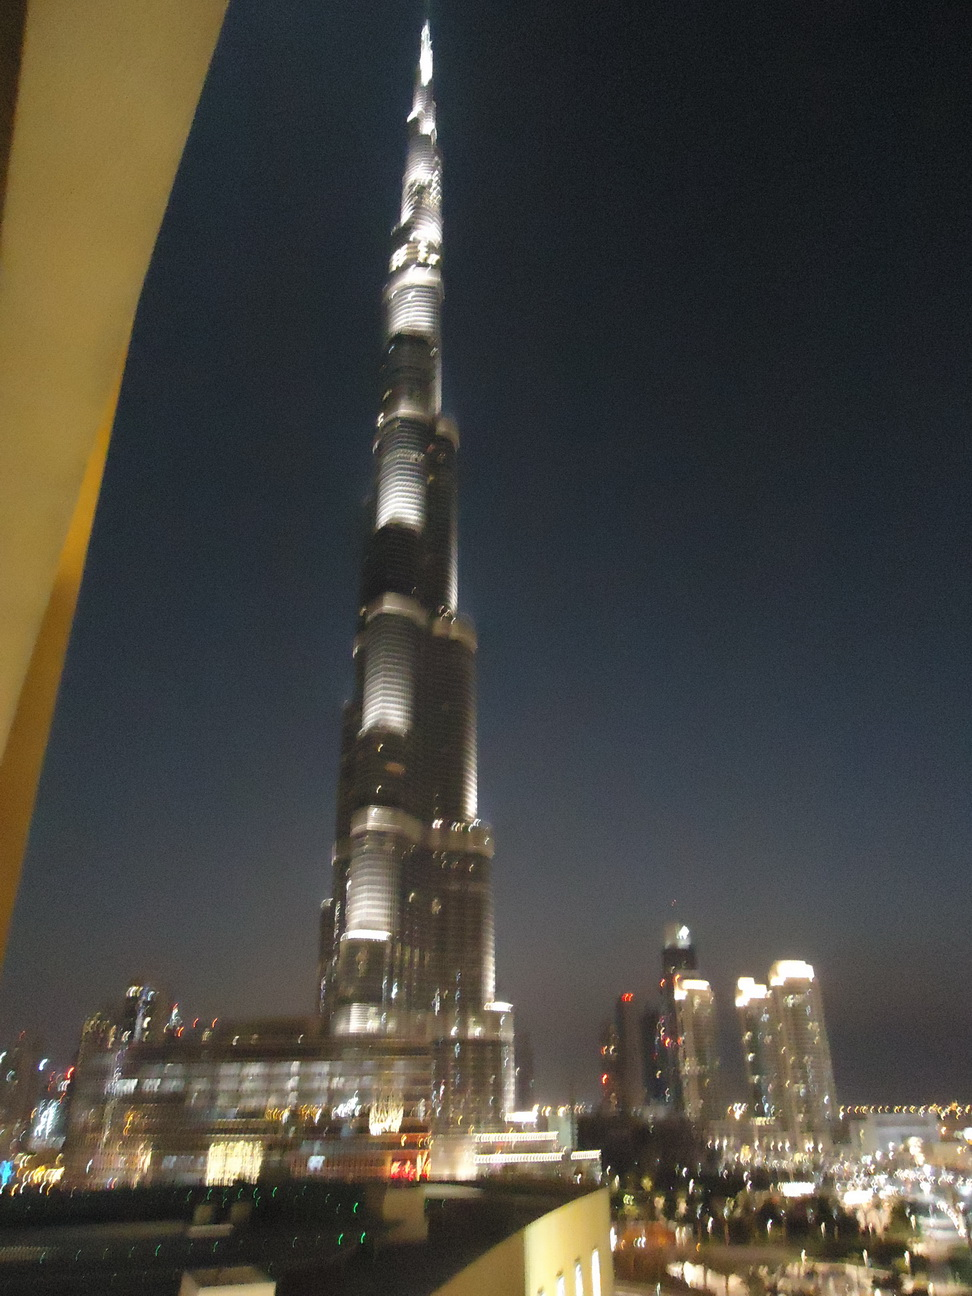 I am burj khalifa sondha 39 s notes for Burj khalifa room rates per night